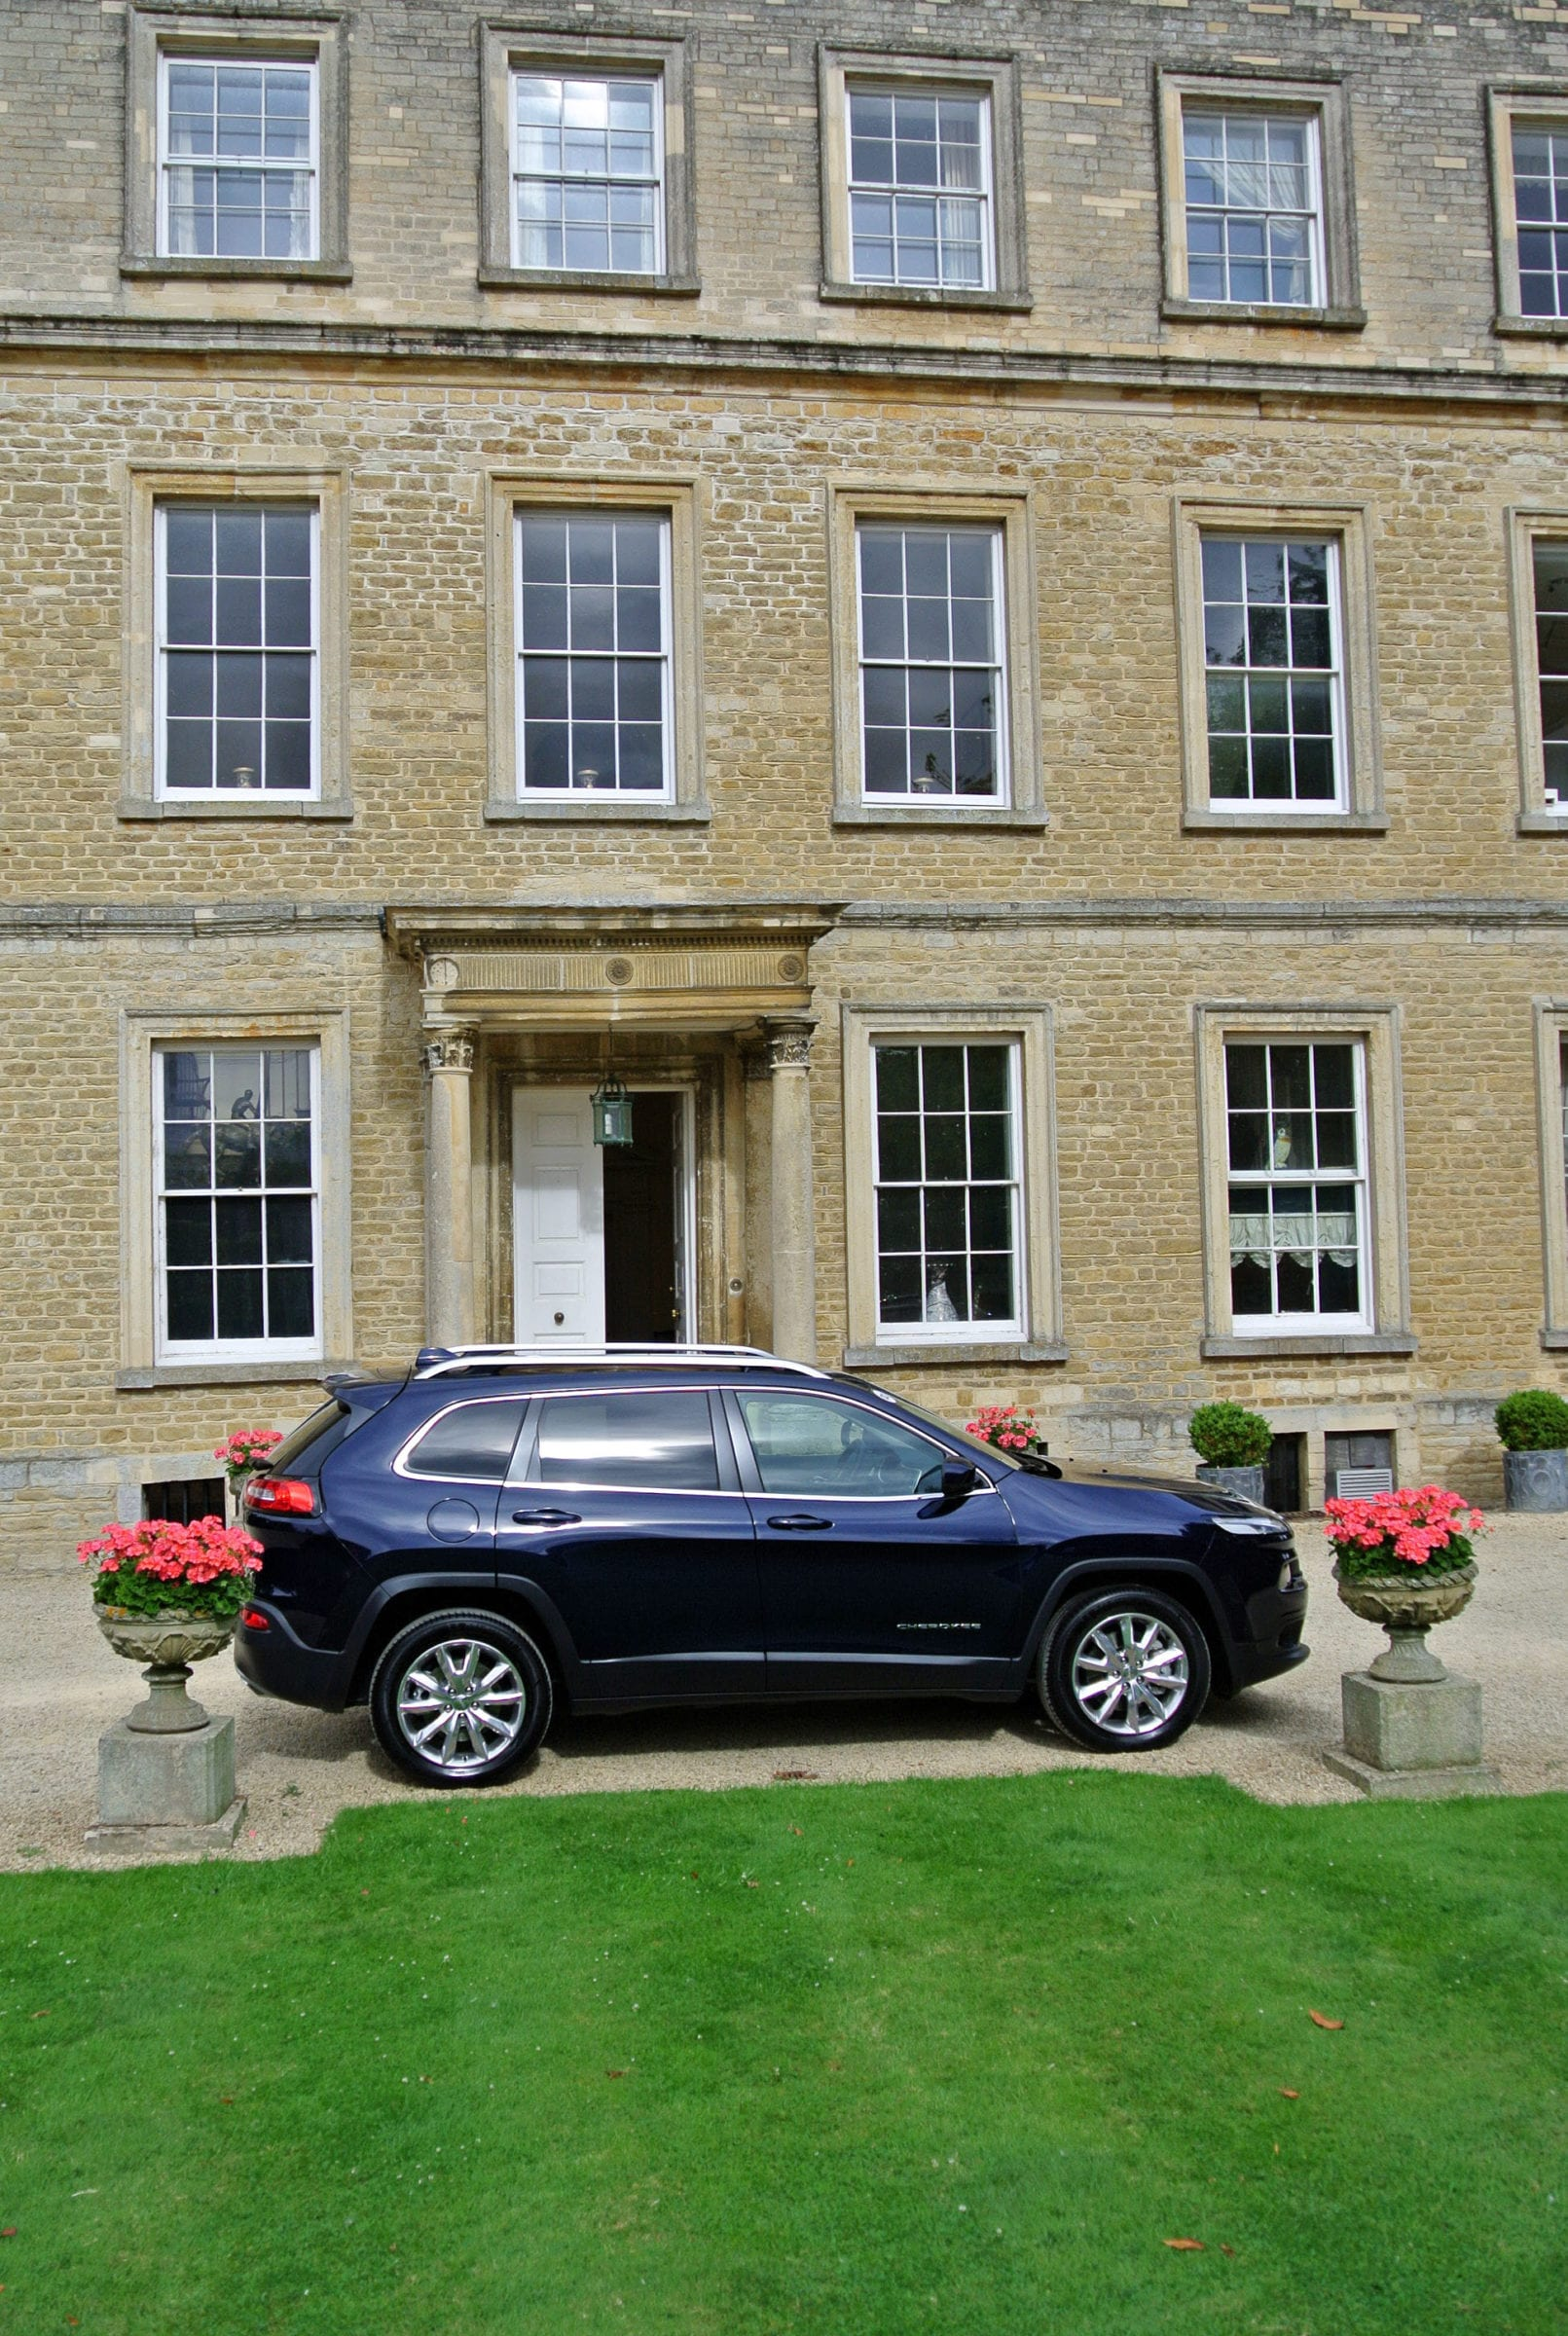 Owning a country estate creates a case for a 4x4 estate